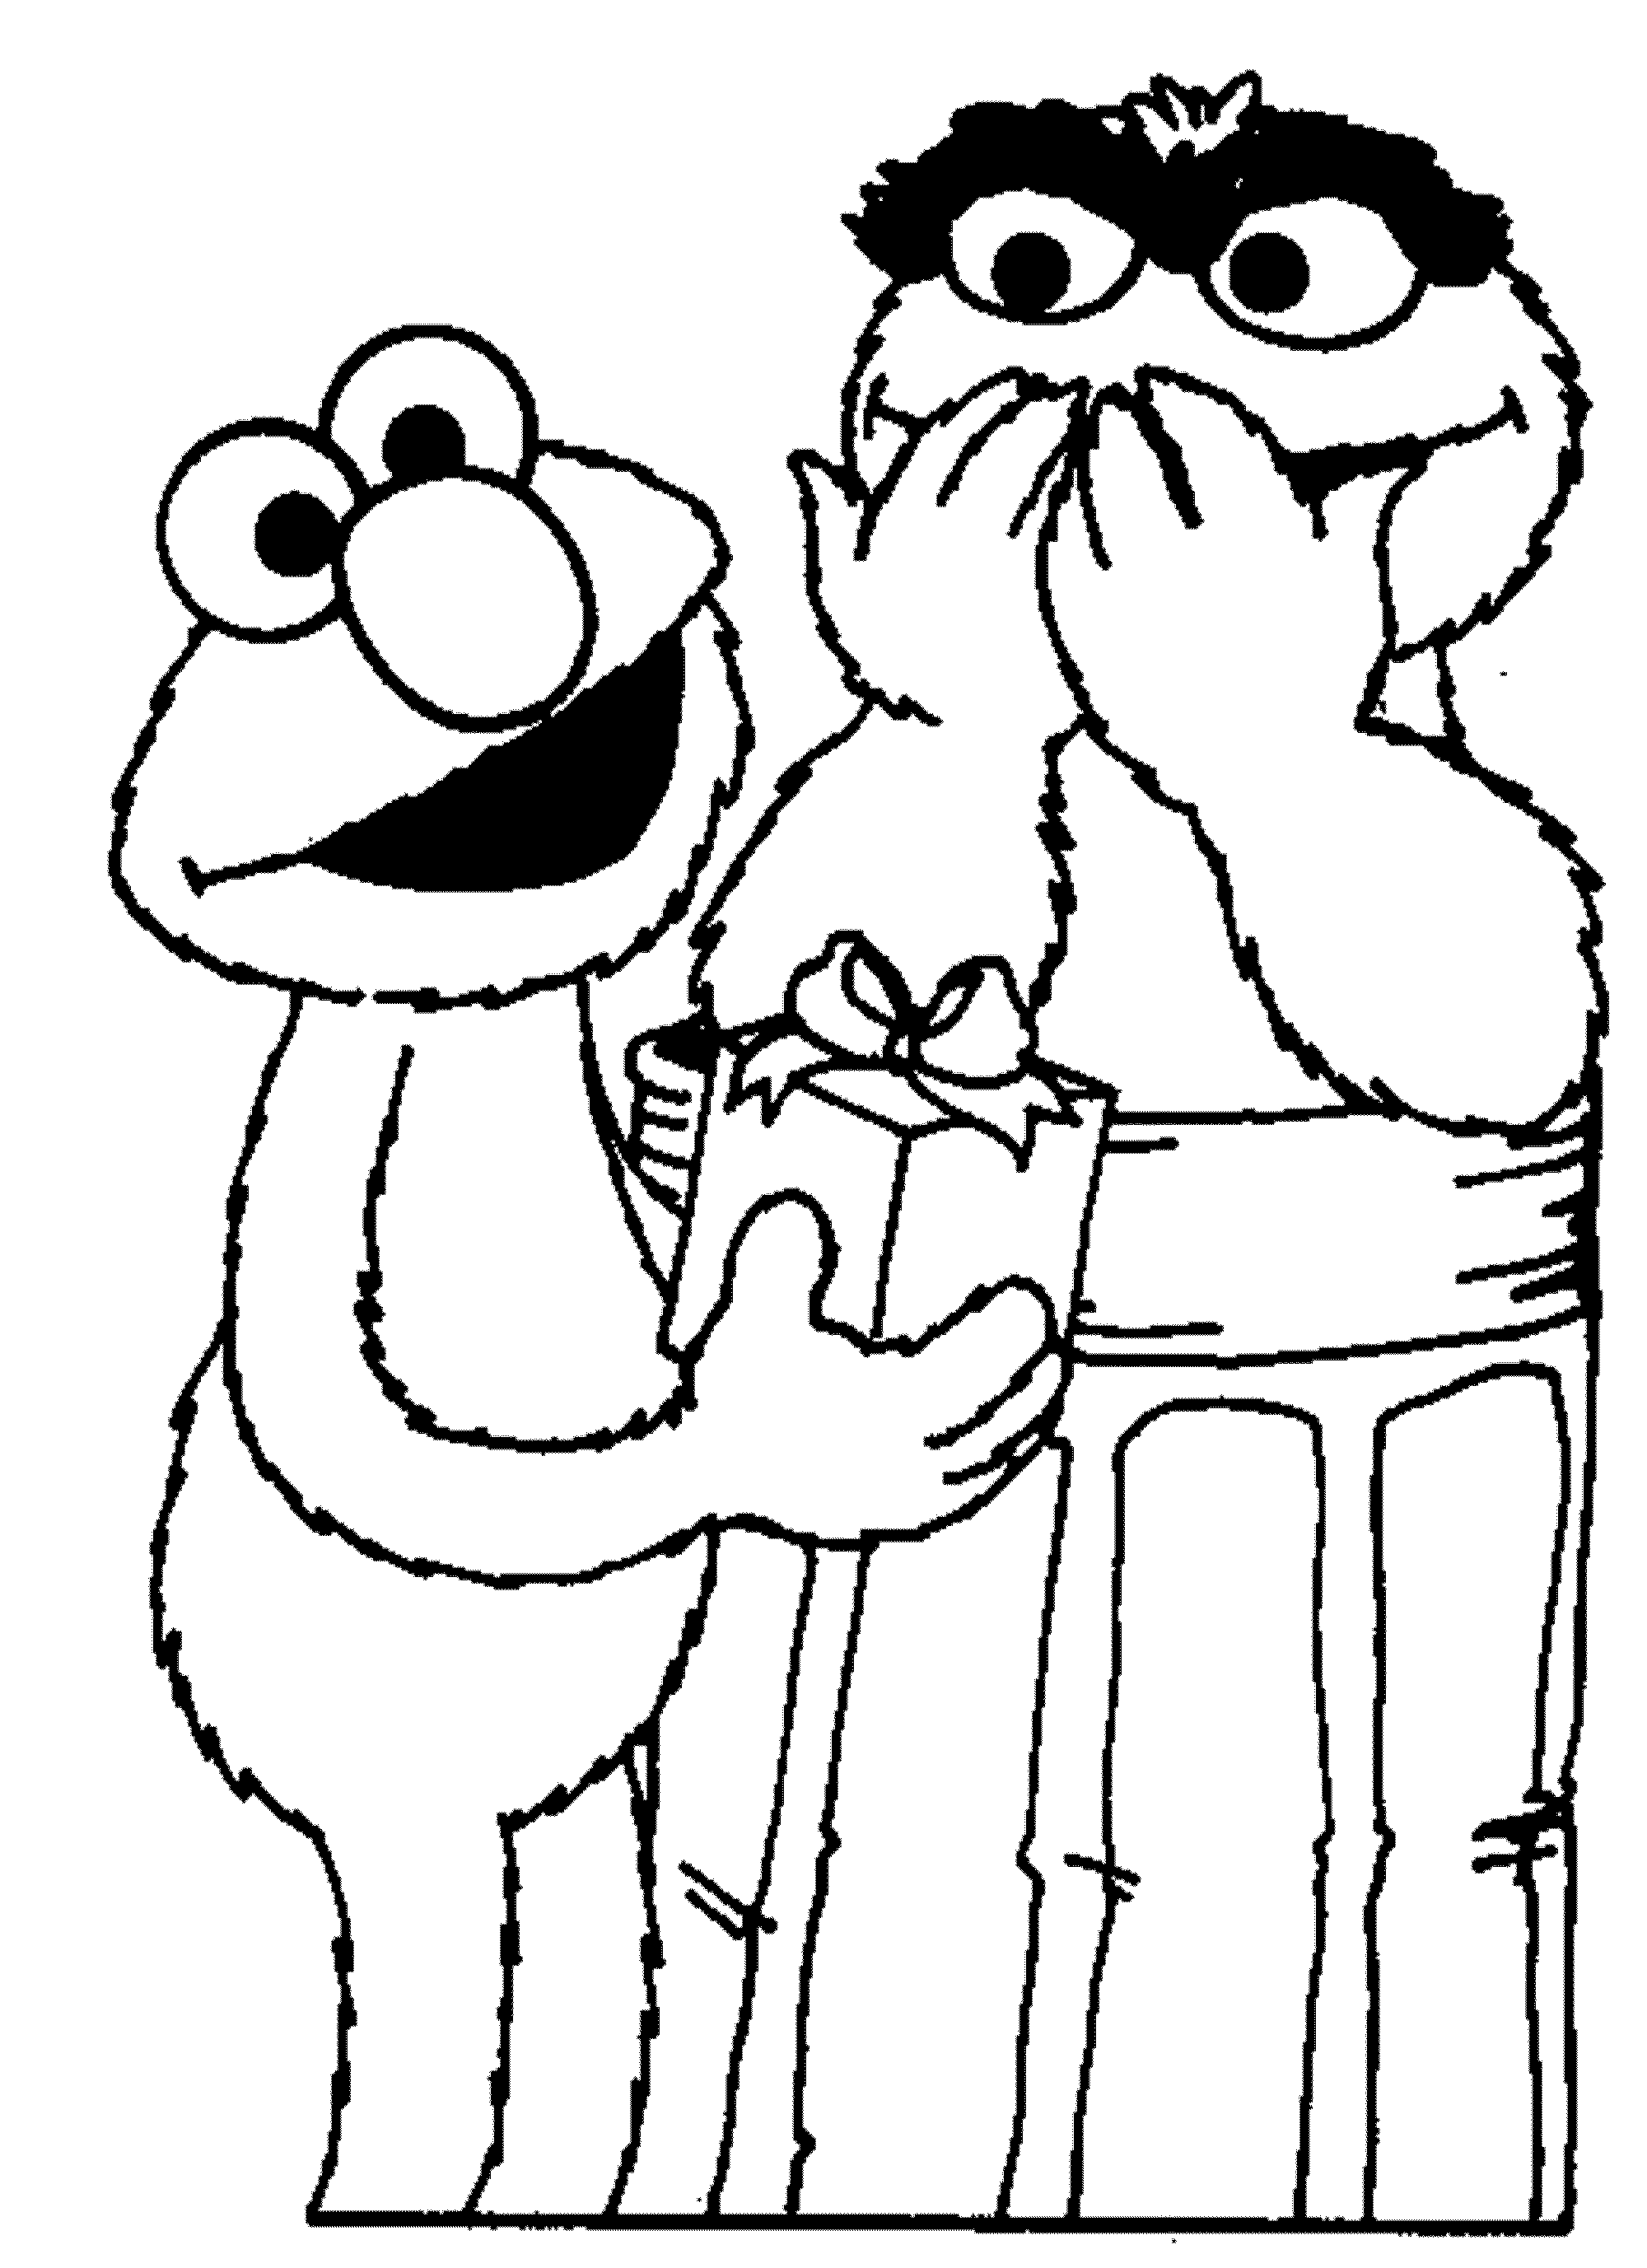 Elmo Coloring Pages for Children s